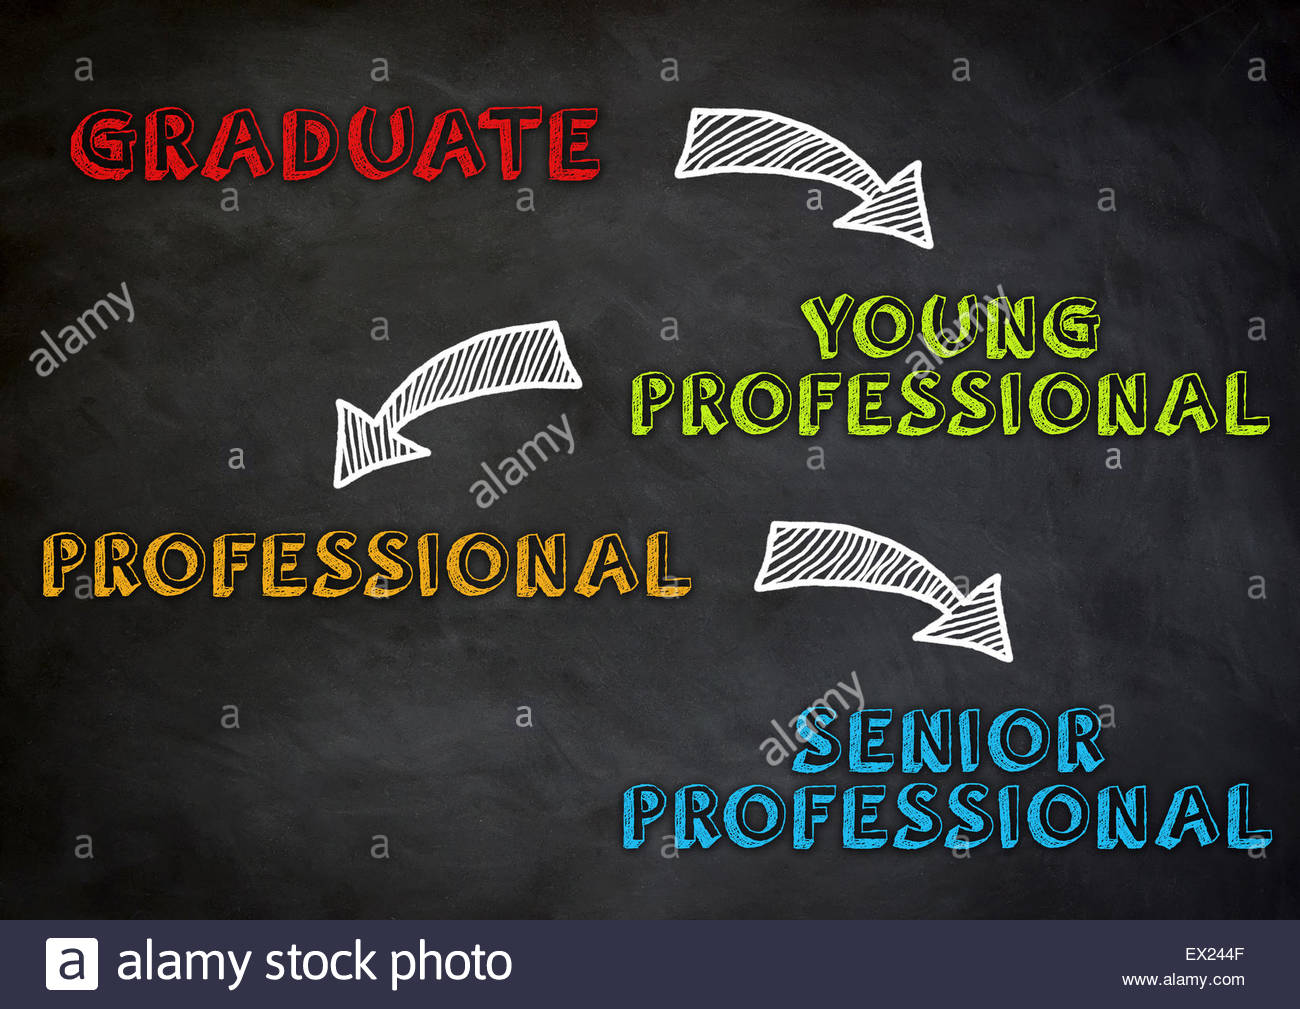 career steps from graduate to senior professional - Stock Image